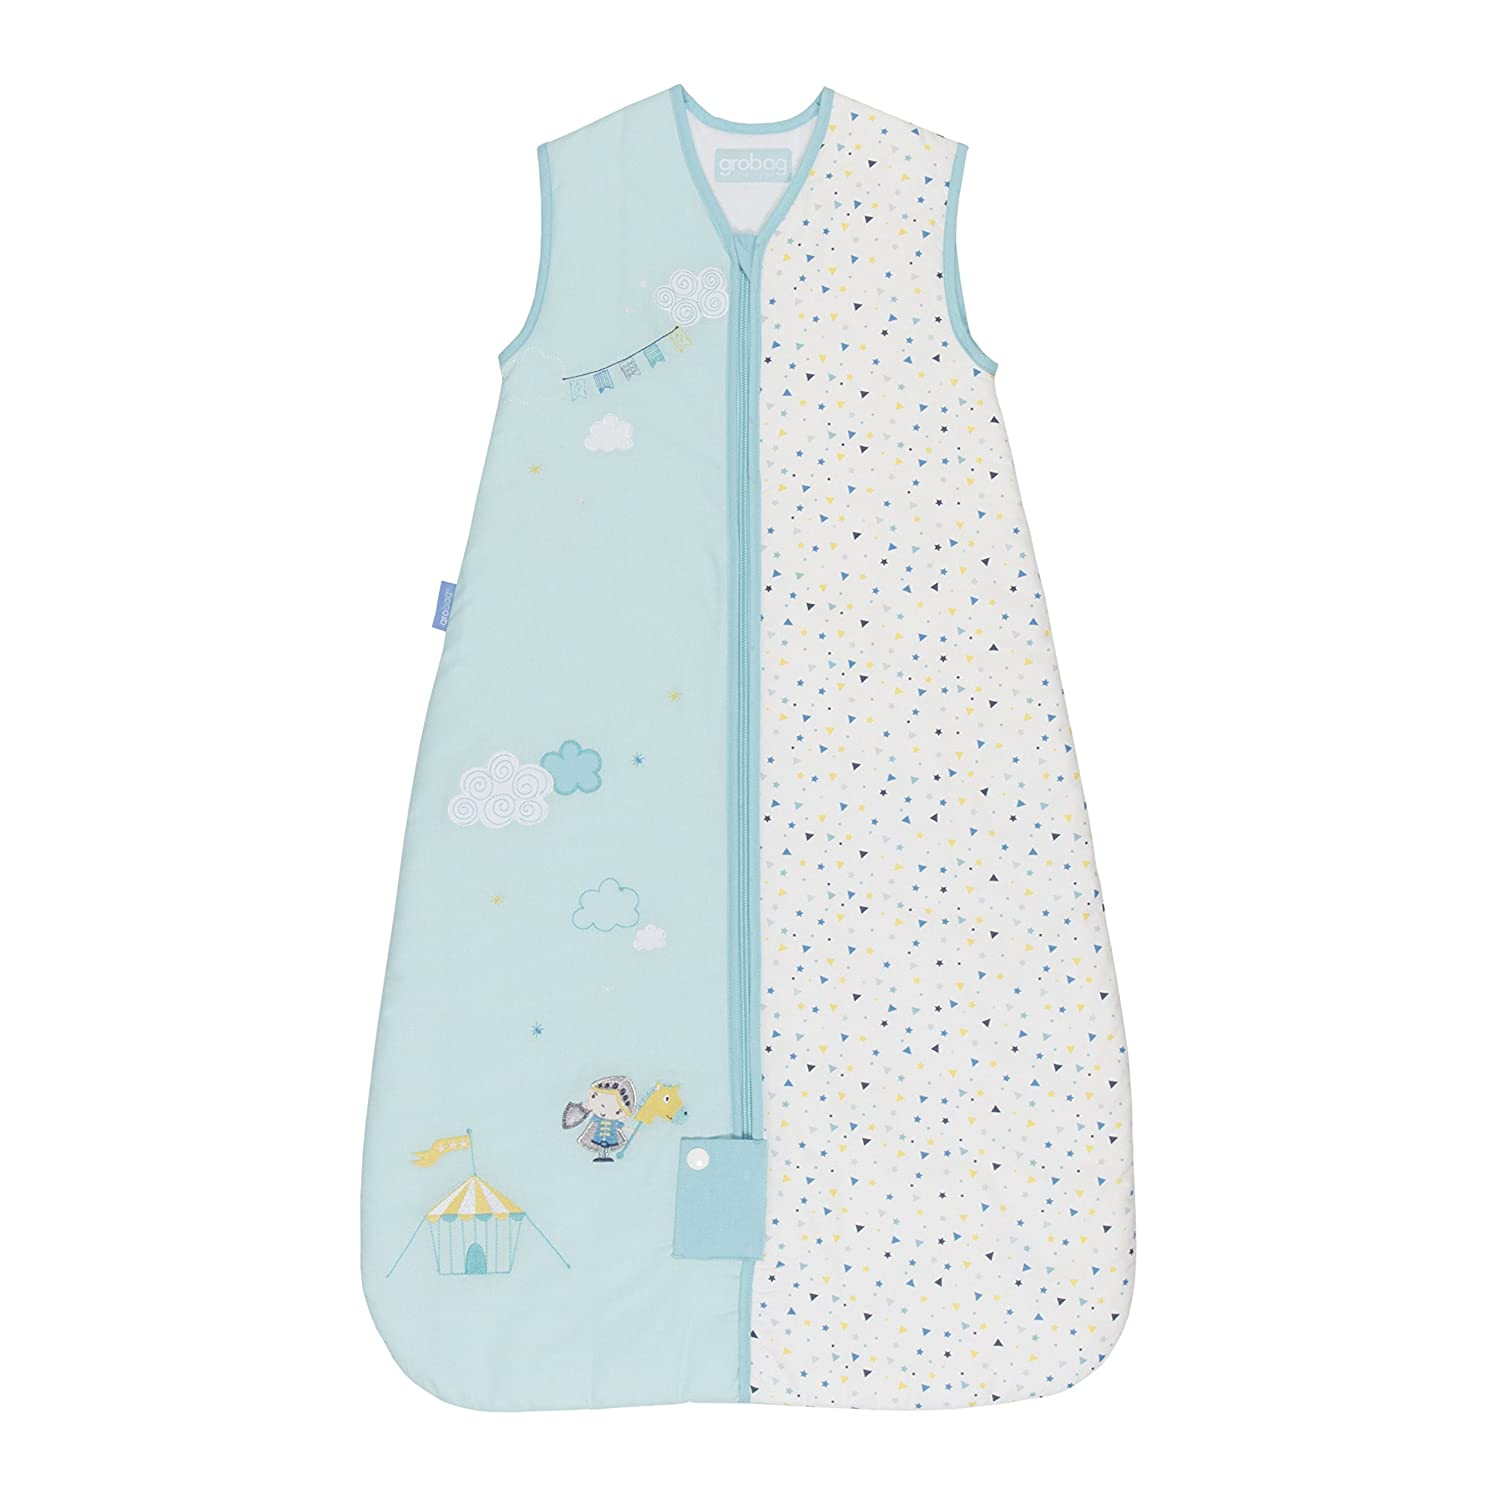 Grobag Knight's Tale Baby Sleeping Bag 6-18Months, Tog Rating: 1.0 GRPRB AAA4175